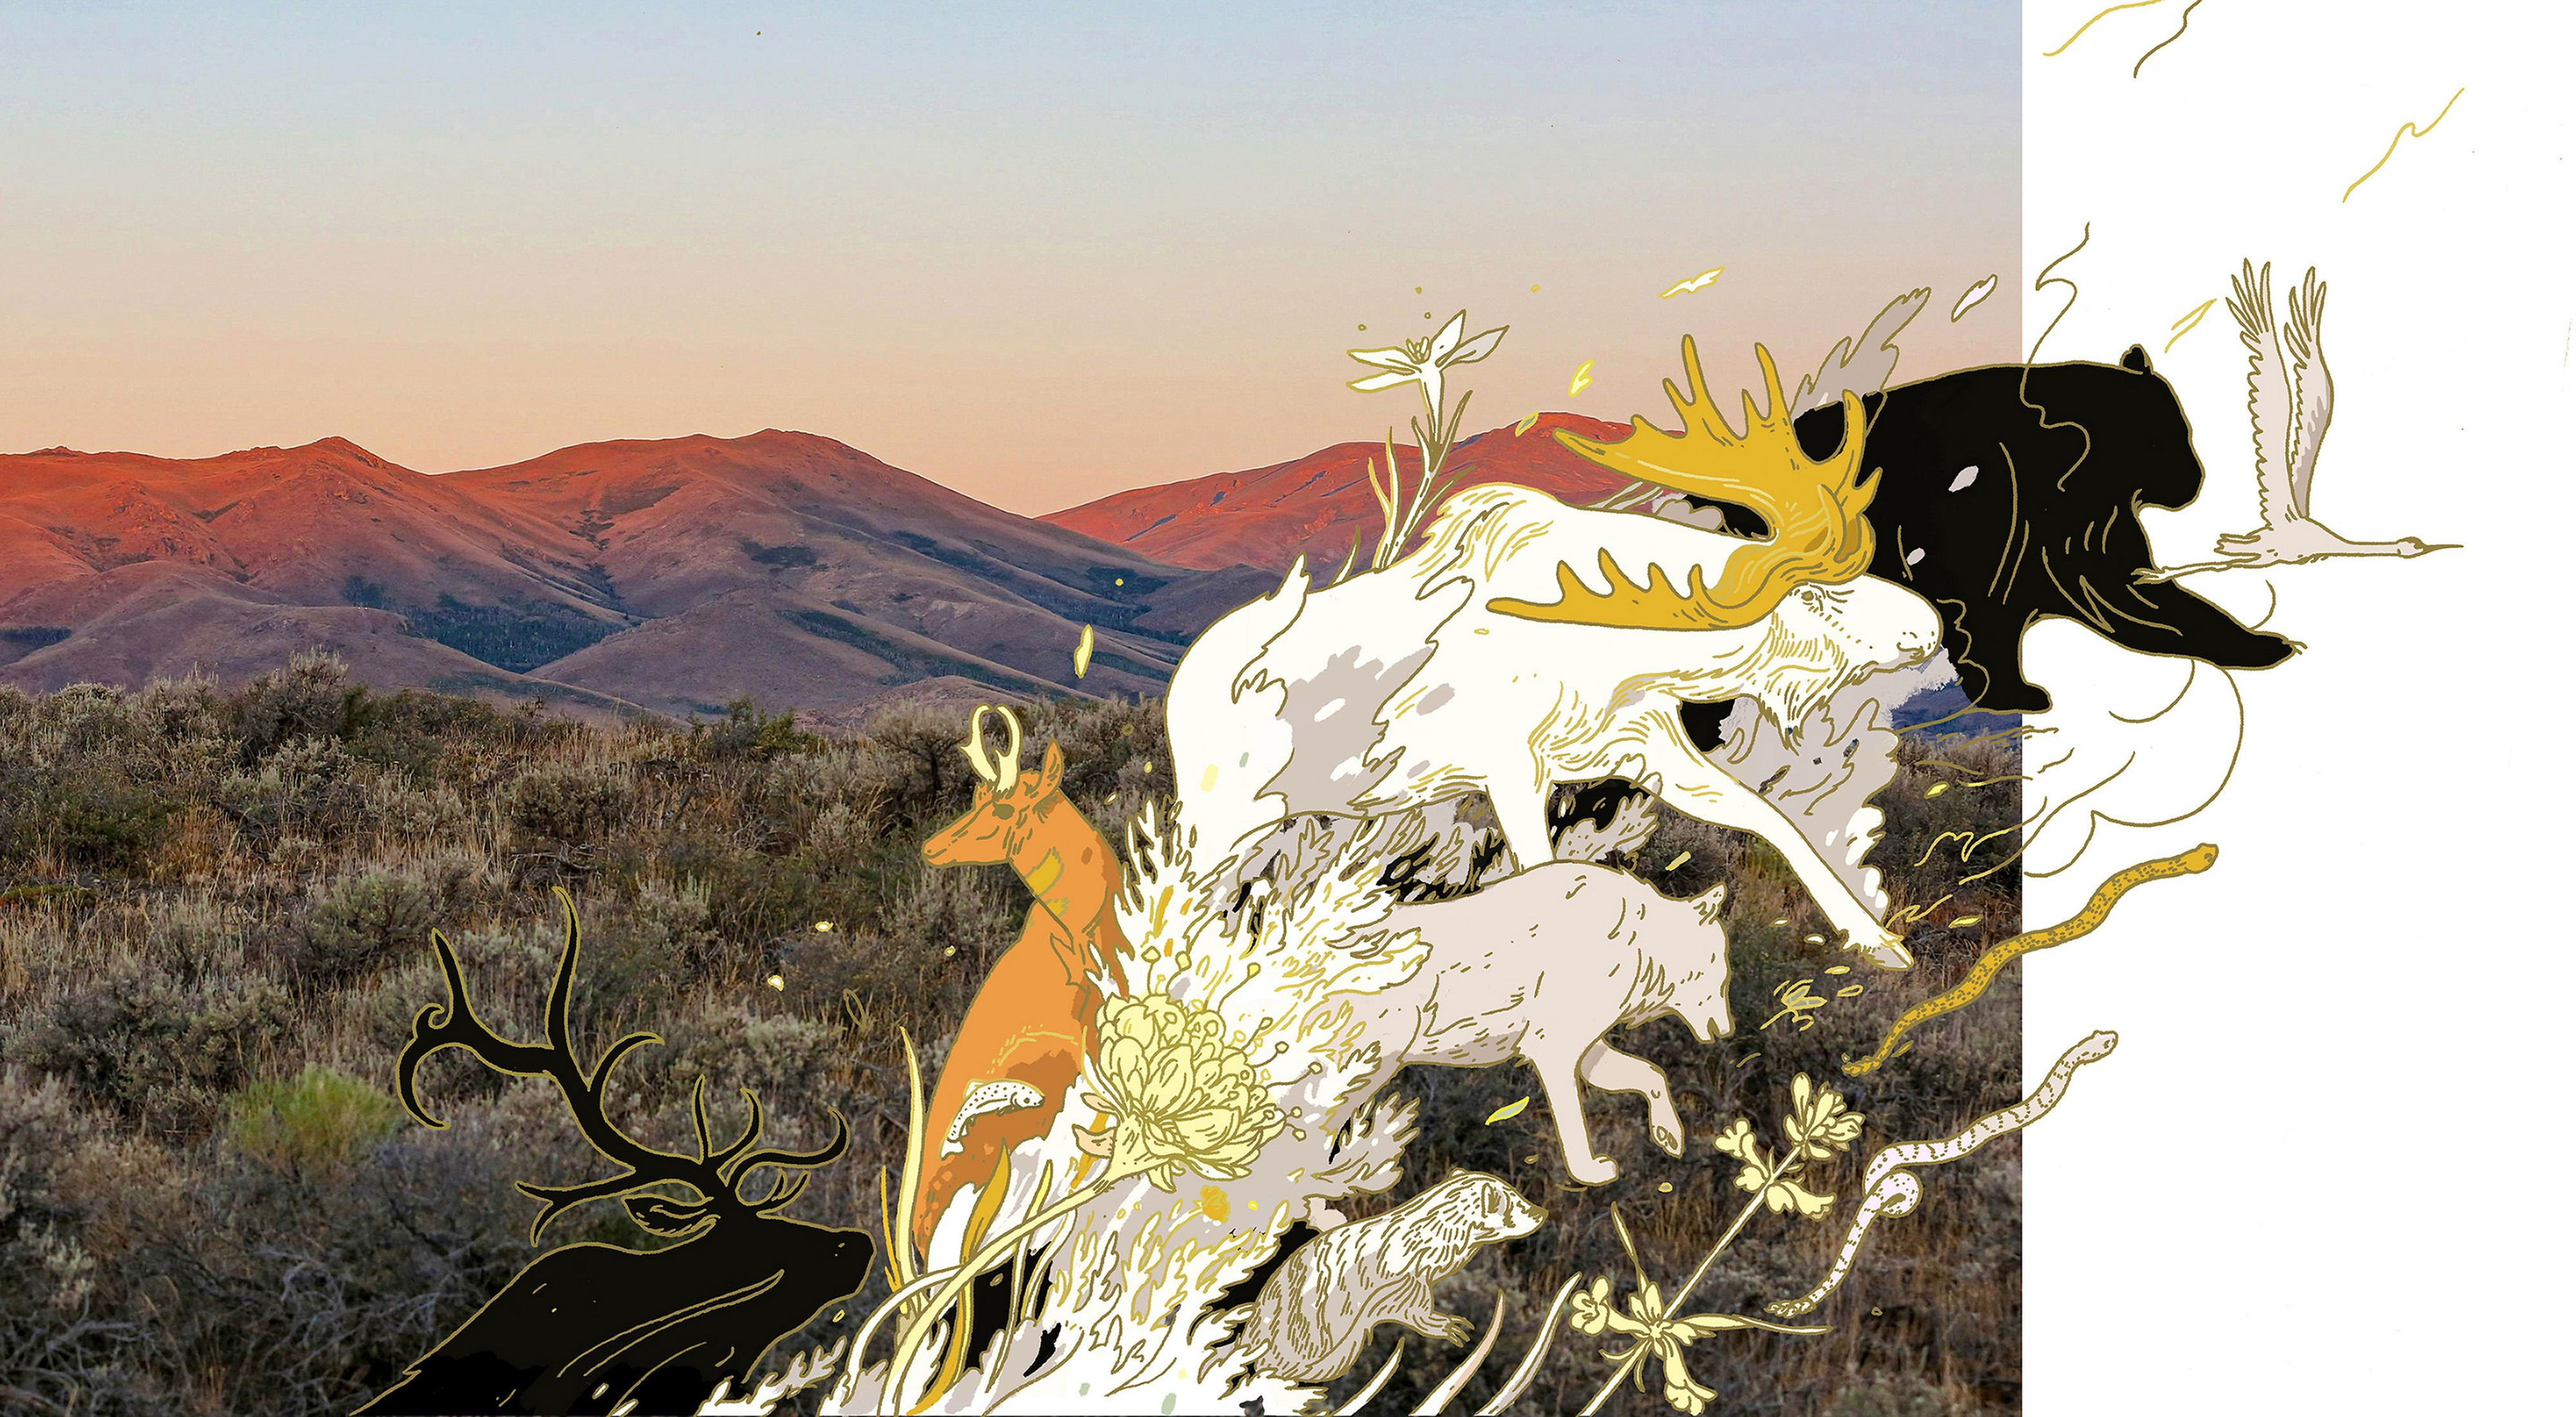 Illustrated animals move across a forest and mountains landscape.